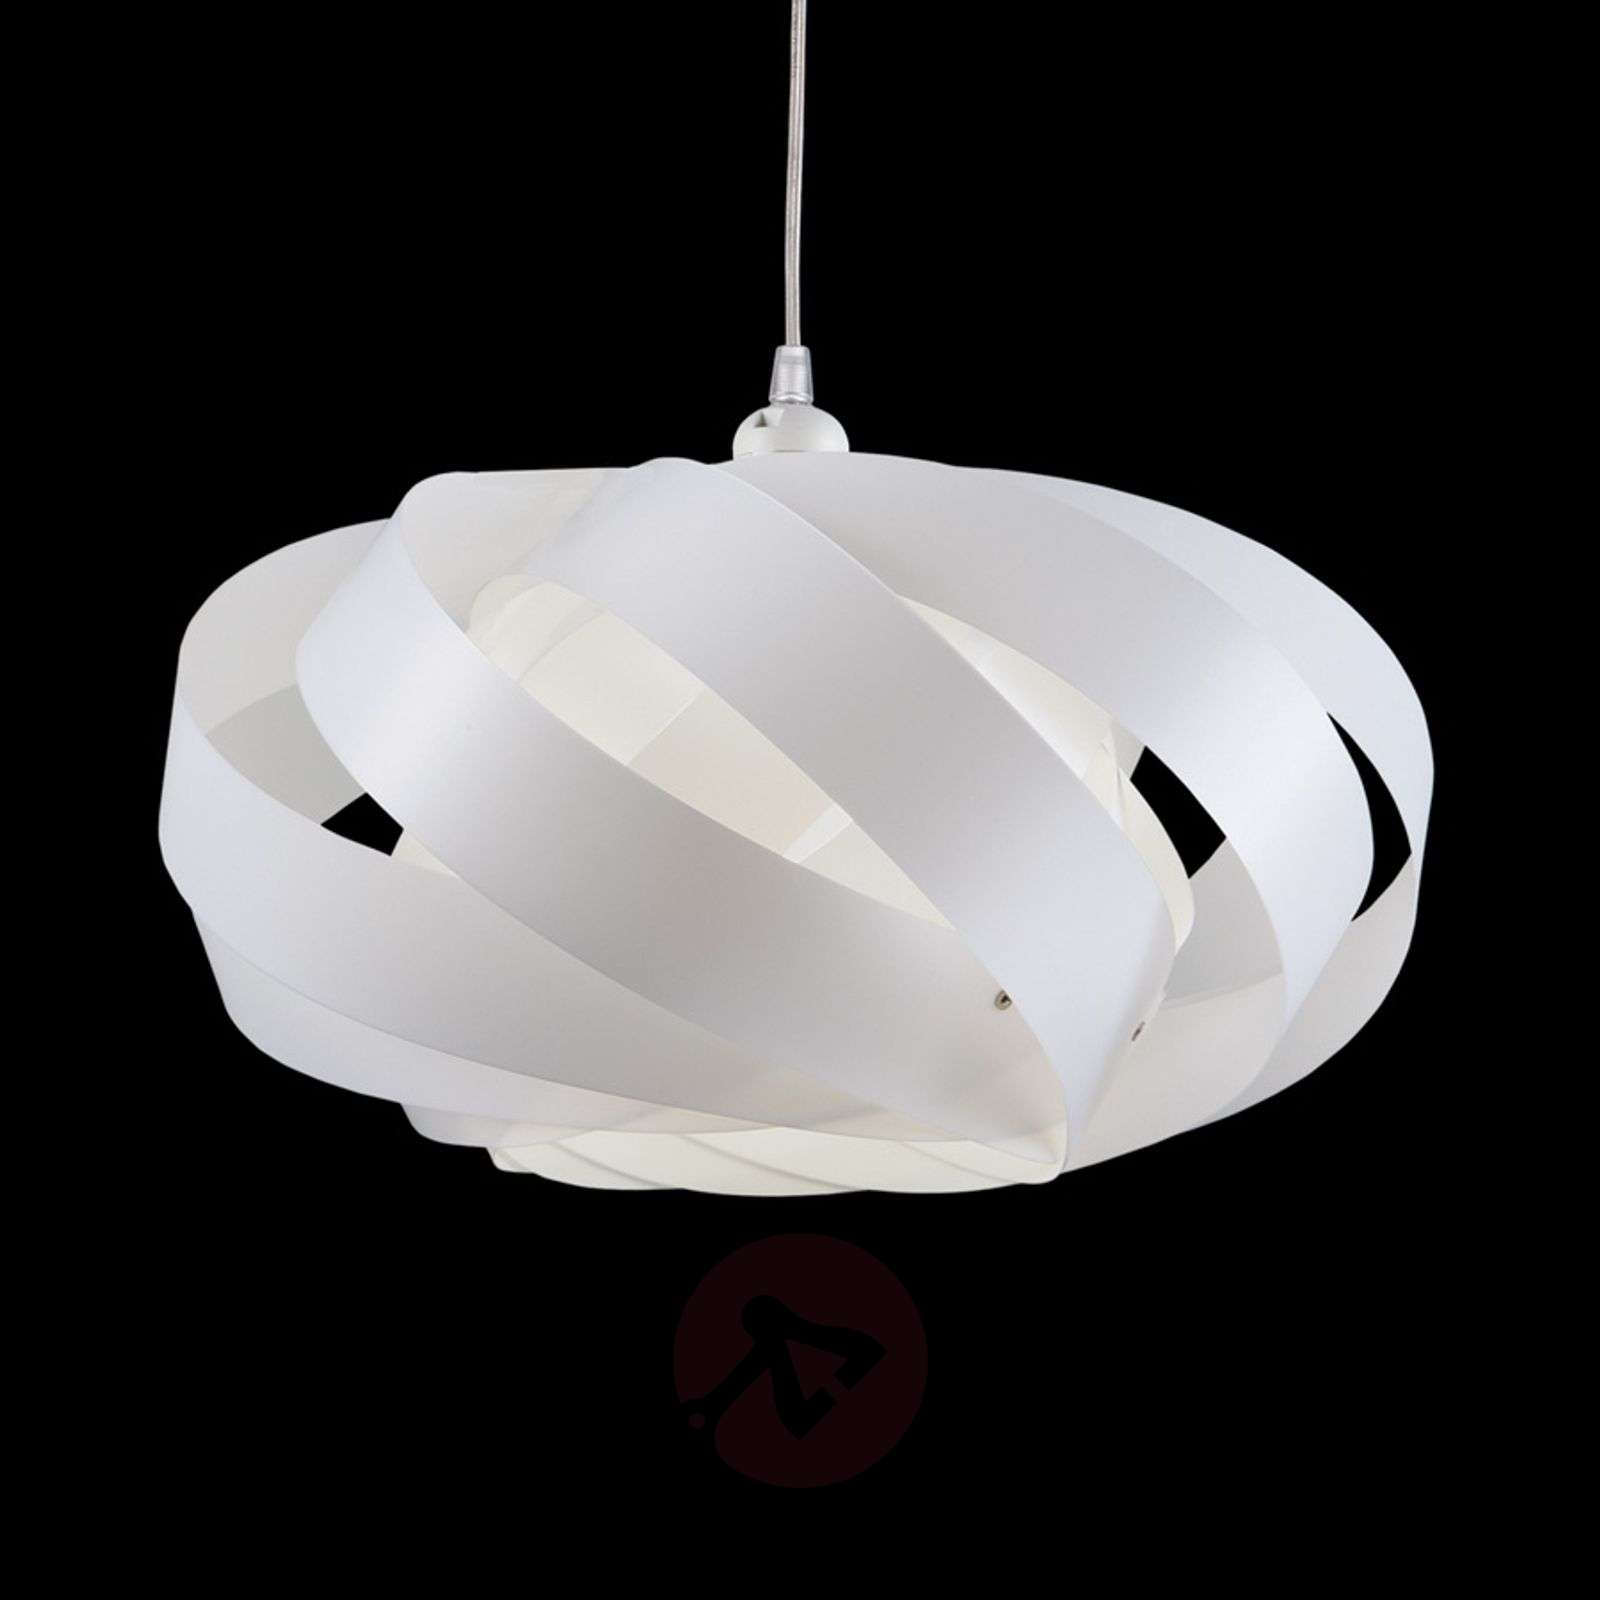 Striped hanging light Mini Nest, white-1056034-01